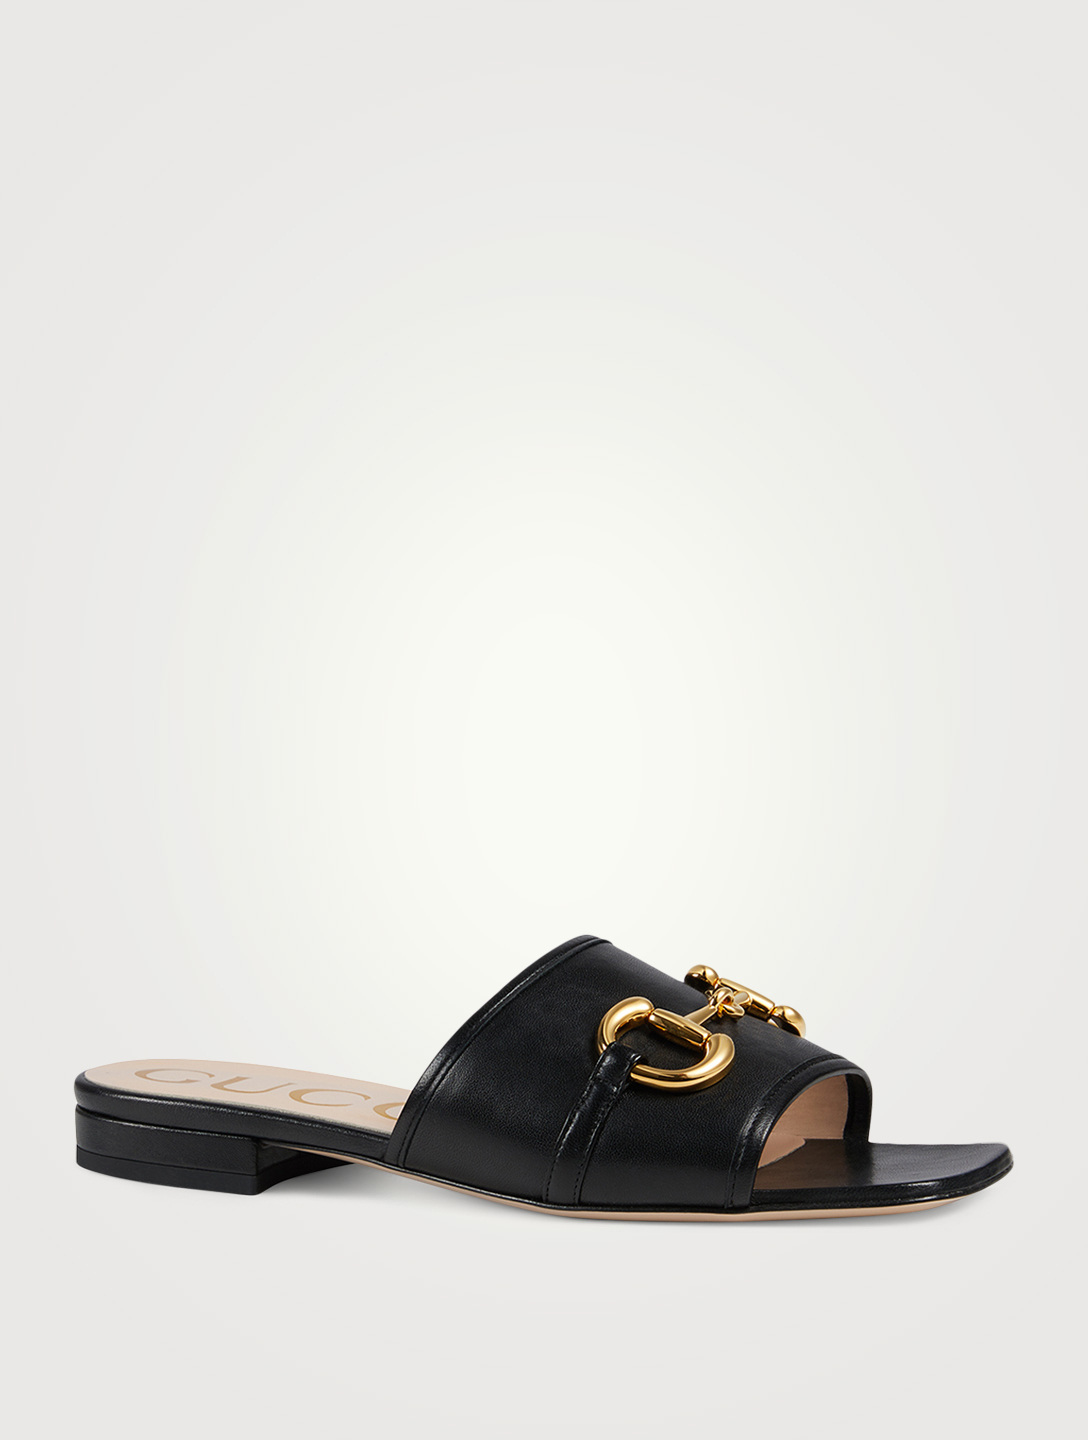 GUCCI Leather Slide Sandals With Horsebit Women's Black